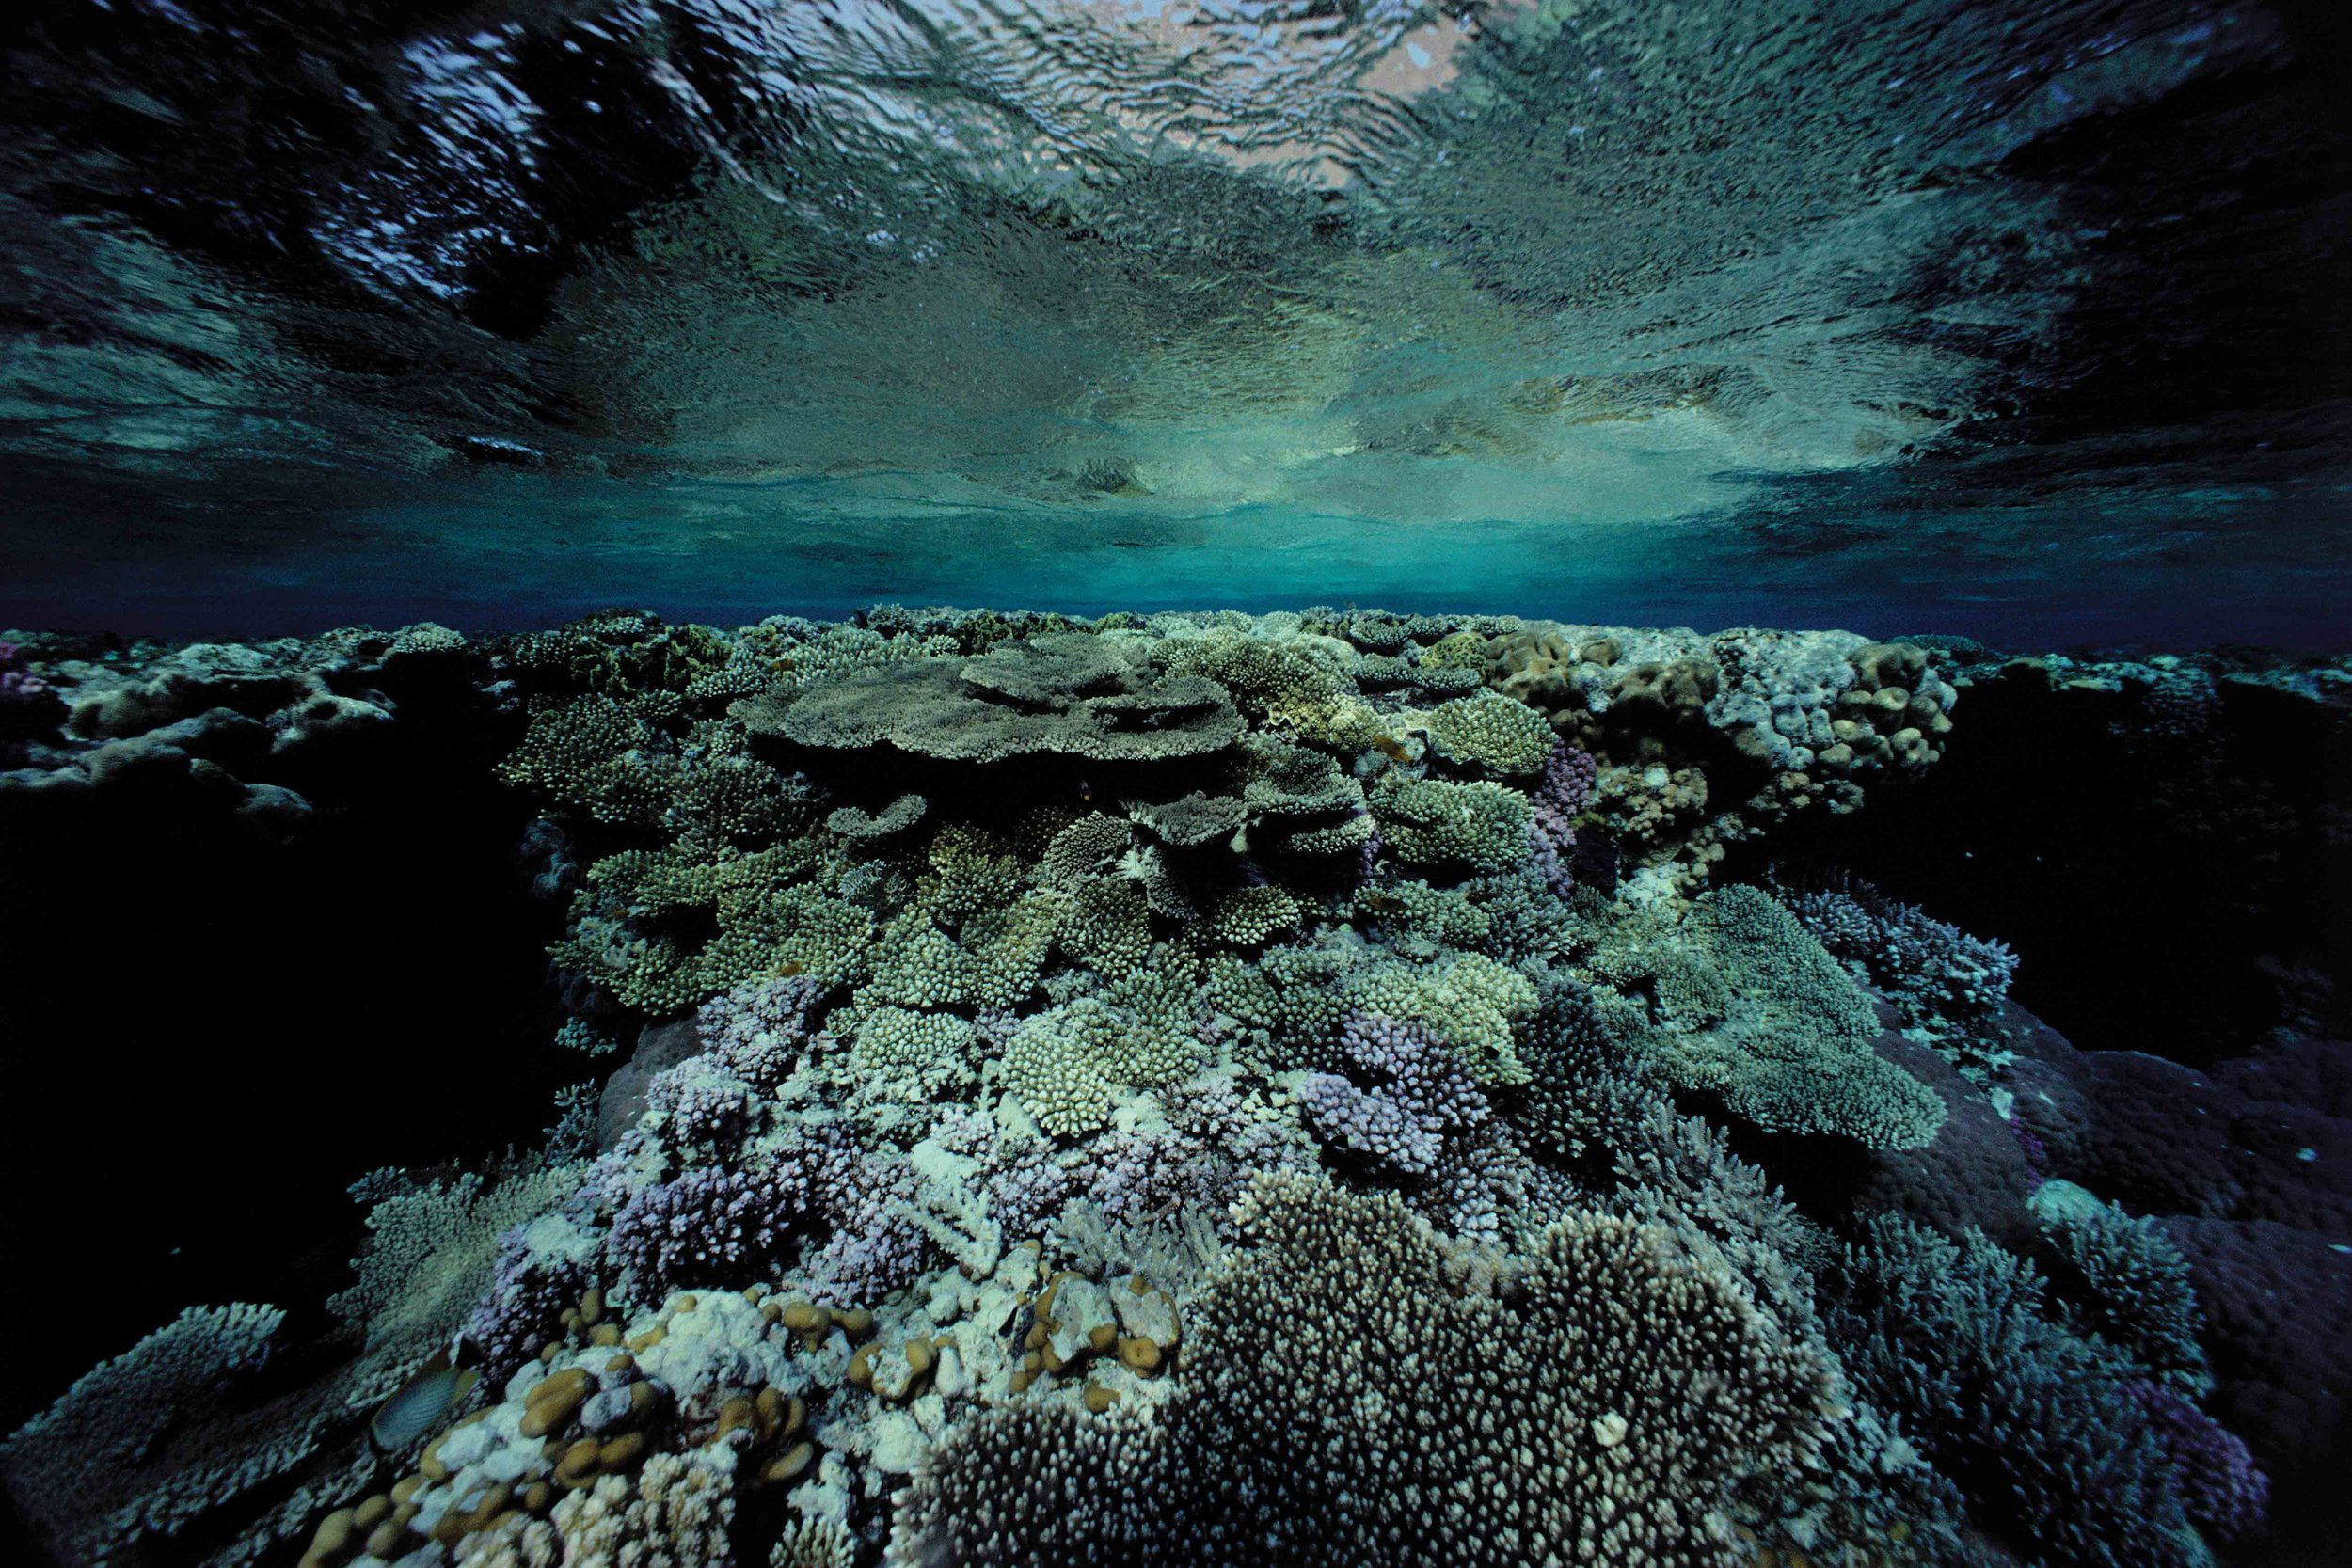 Sea turtles inhabit a wide variety of ocean ecosystems, such as this coral reef in the North Red Sea. © David Doubilet